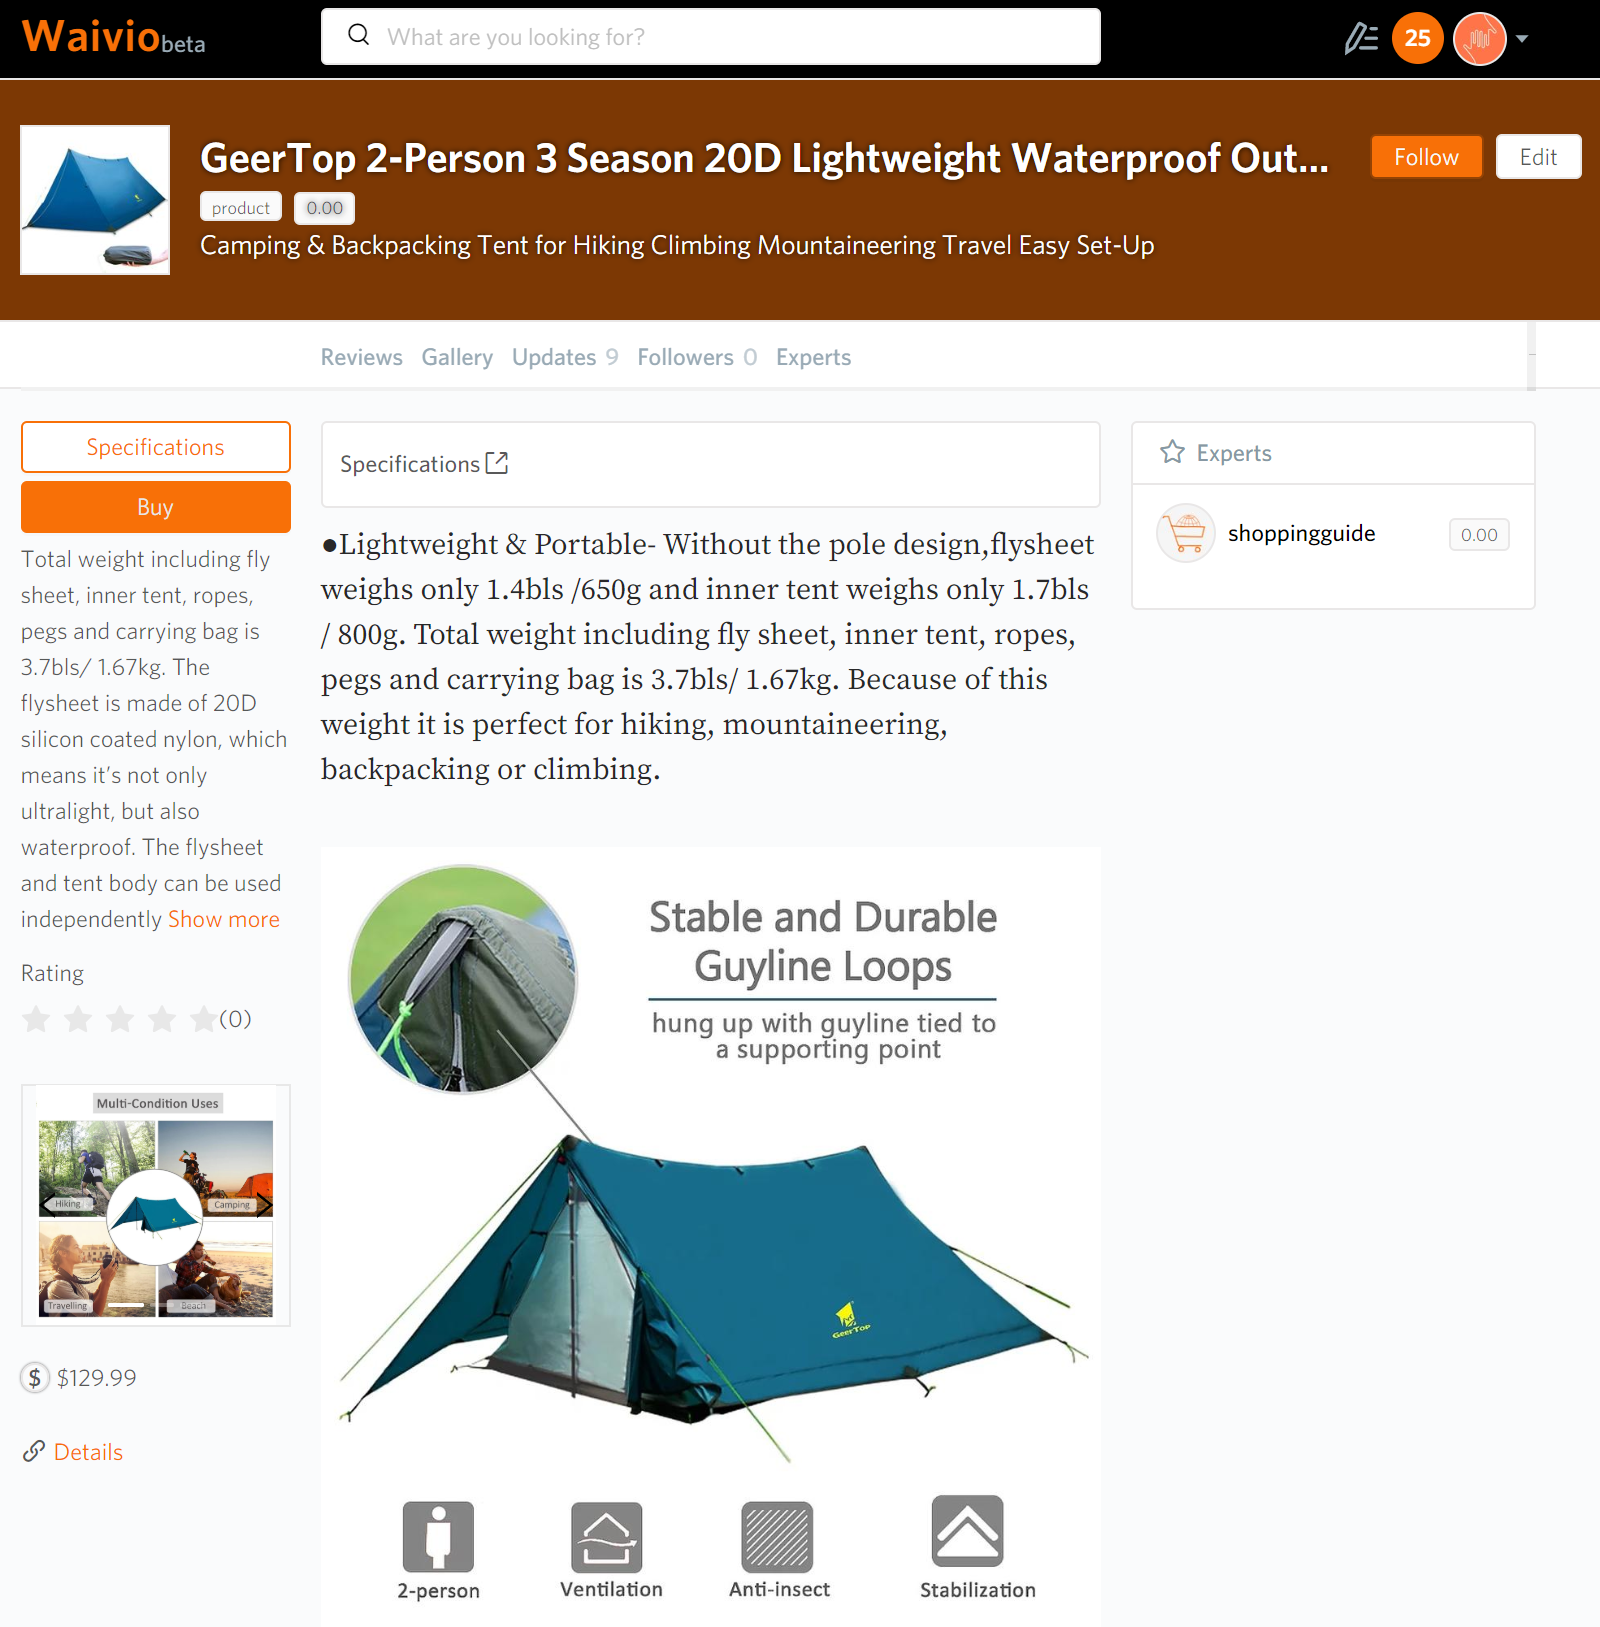 Example of a product listing on Waivio